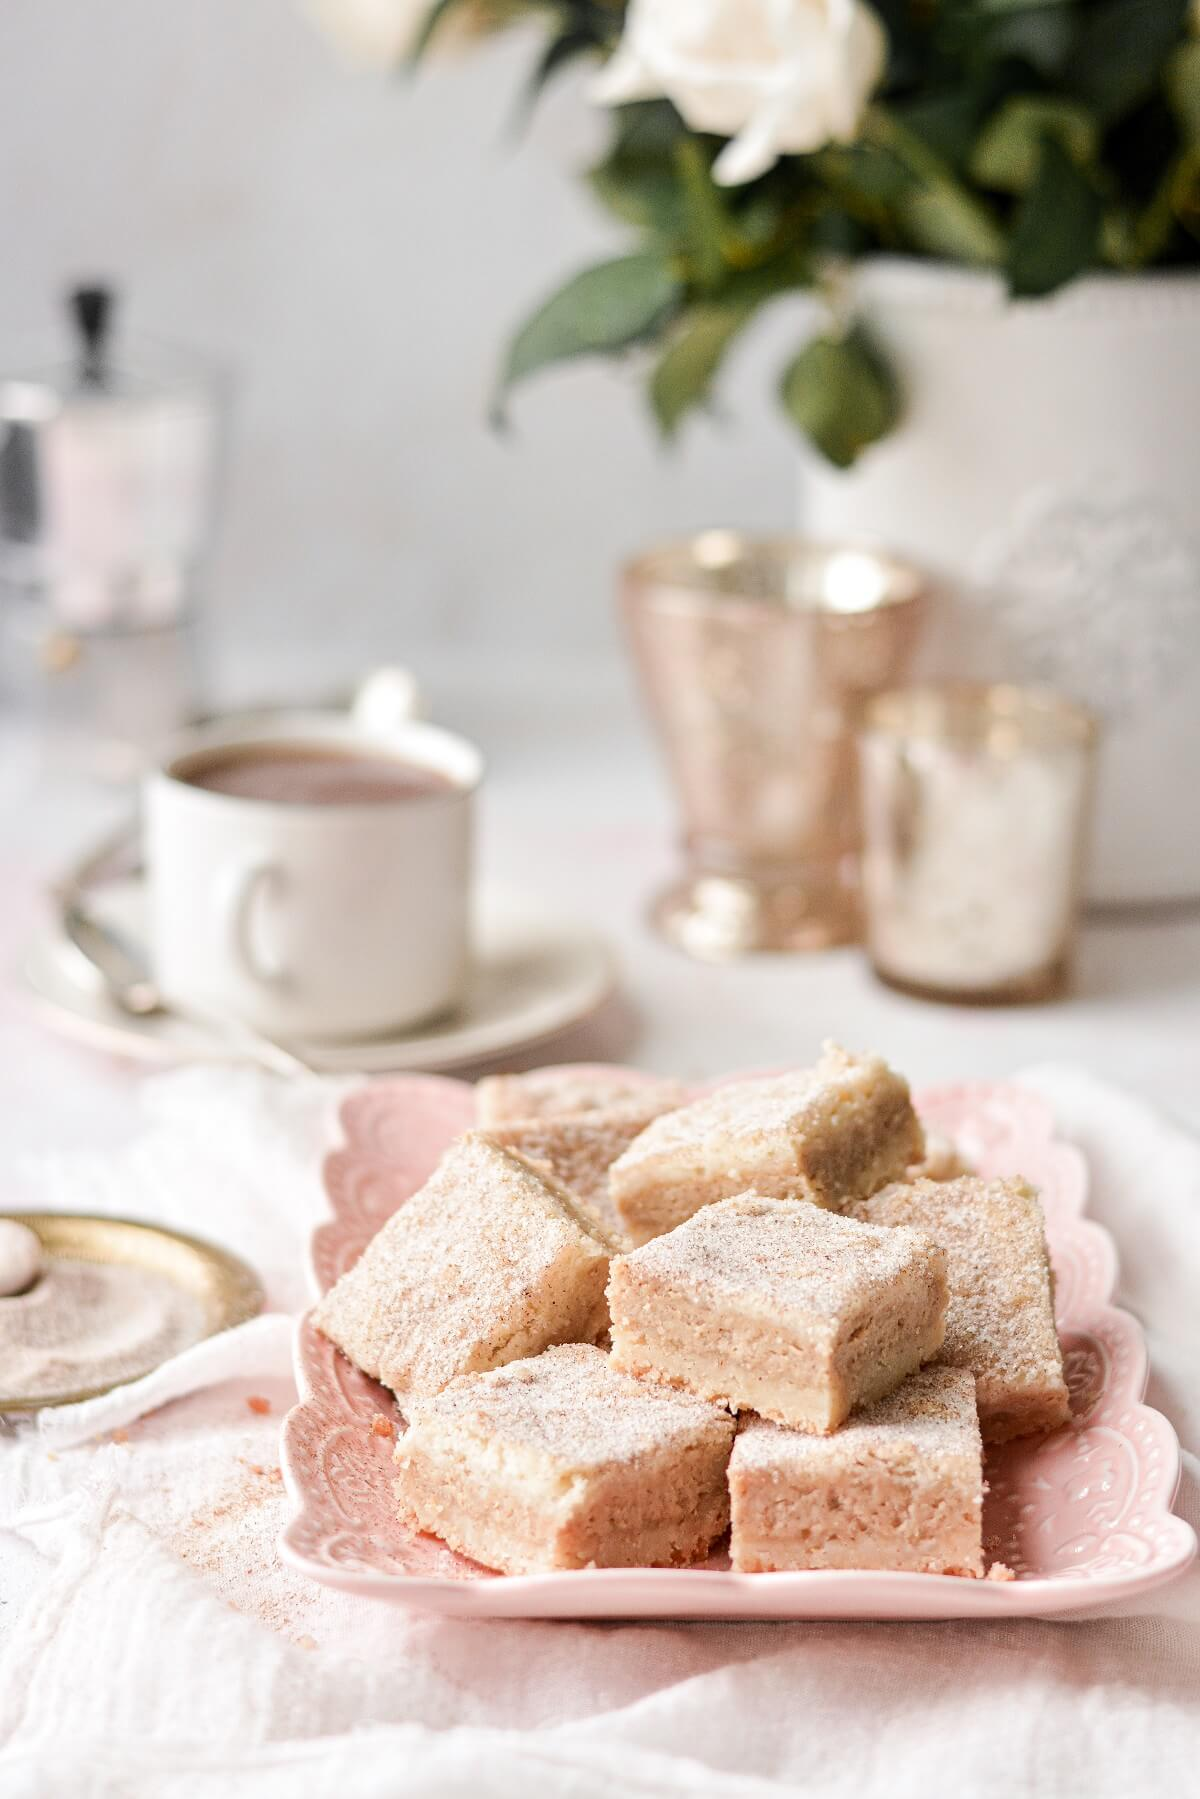 Snickerdoodle cheesecake shortbread bars arranged on a pink plate.